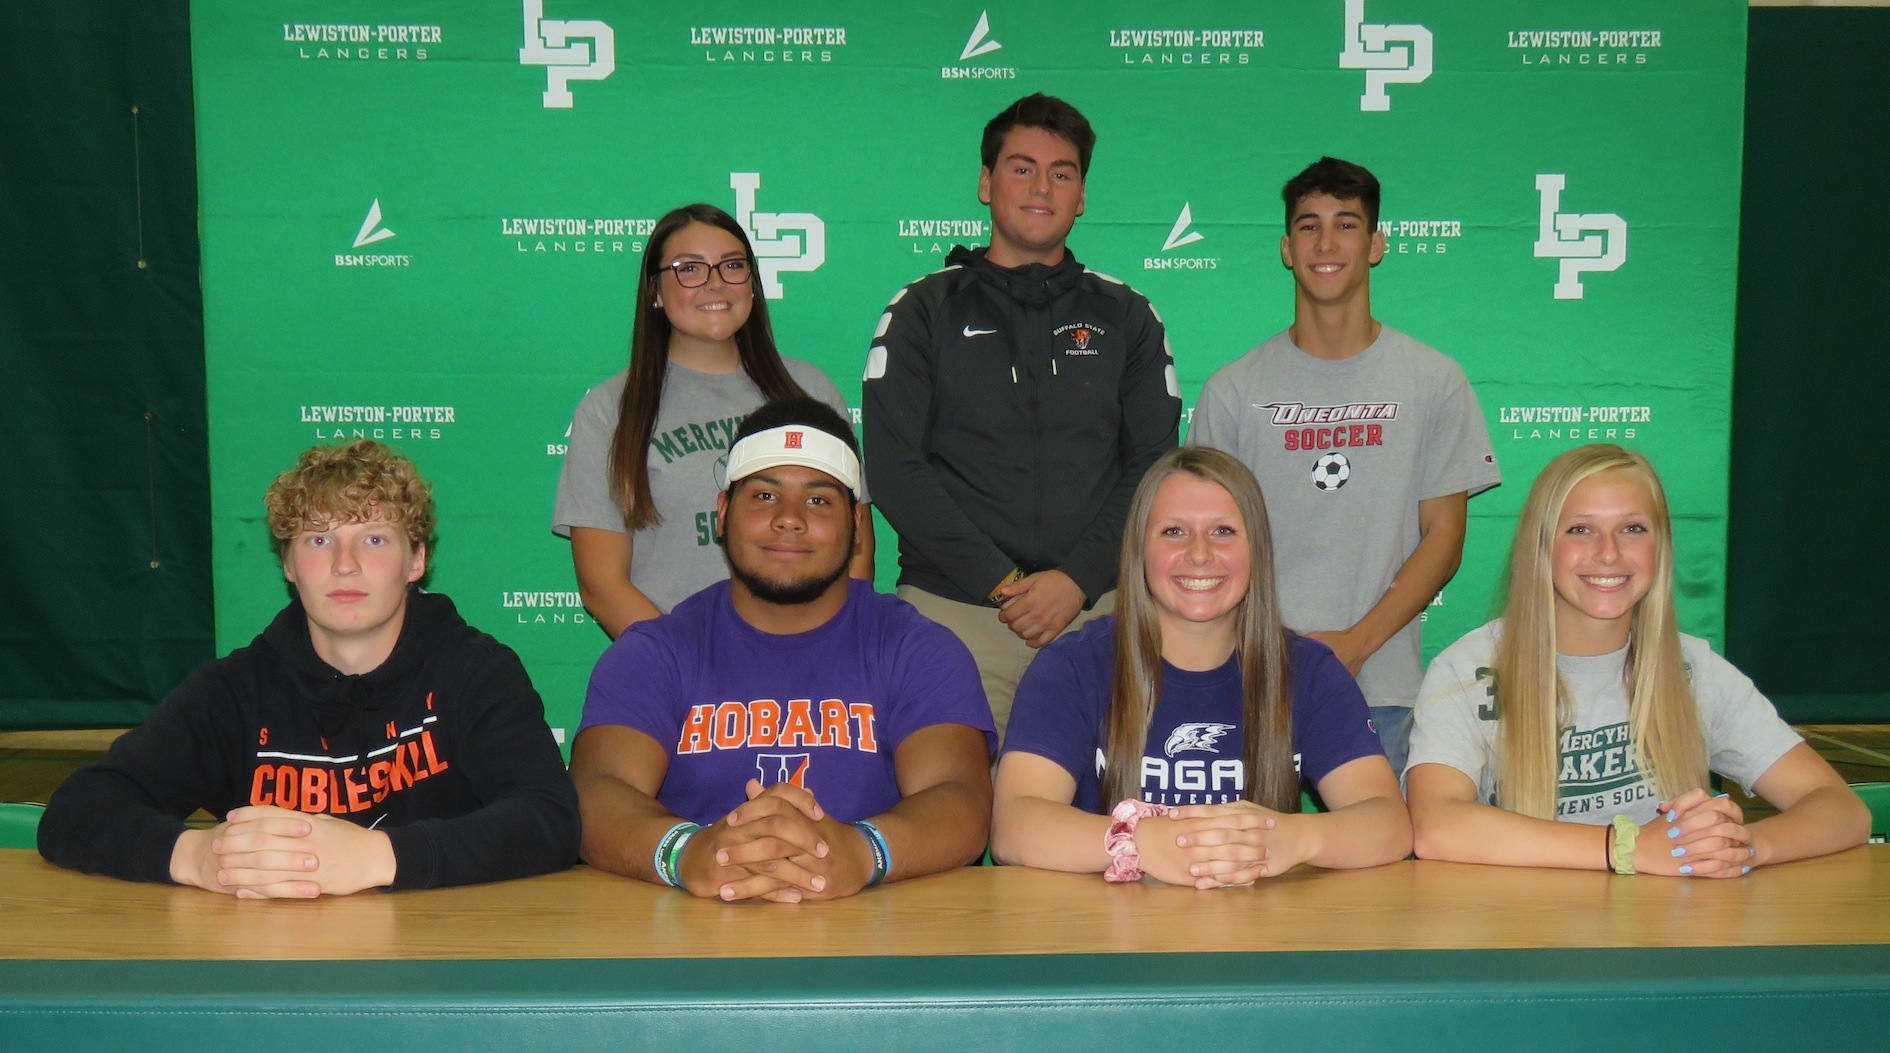 Seven Lewiston-Porter Lancers student athletes signed letters of intent to continue their careers in college on Thursday. From left, front row, Tanner Reisman, Joe Powers, Riley Crum and Alexis Lindamer. Back row, Larissa Reid, Aidan Salick and Jake Westadt. (Photos by David Yarger)